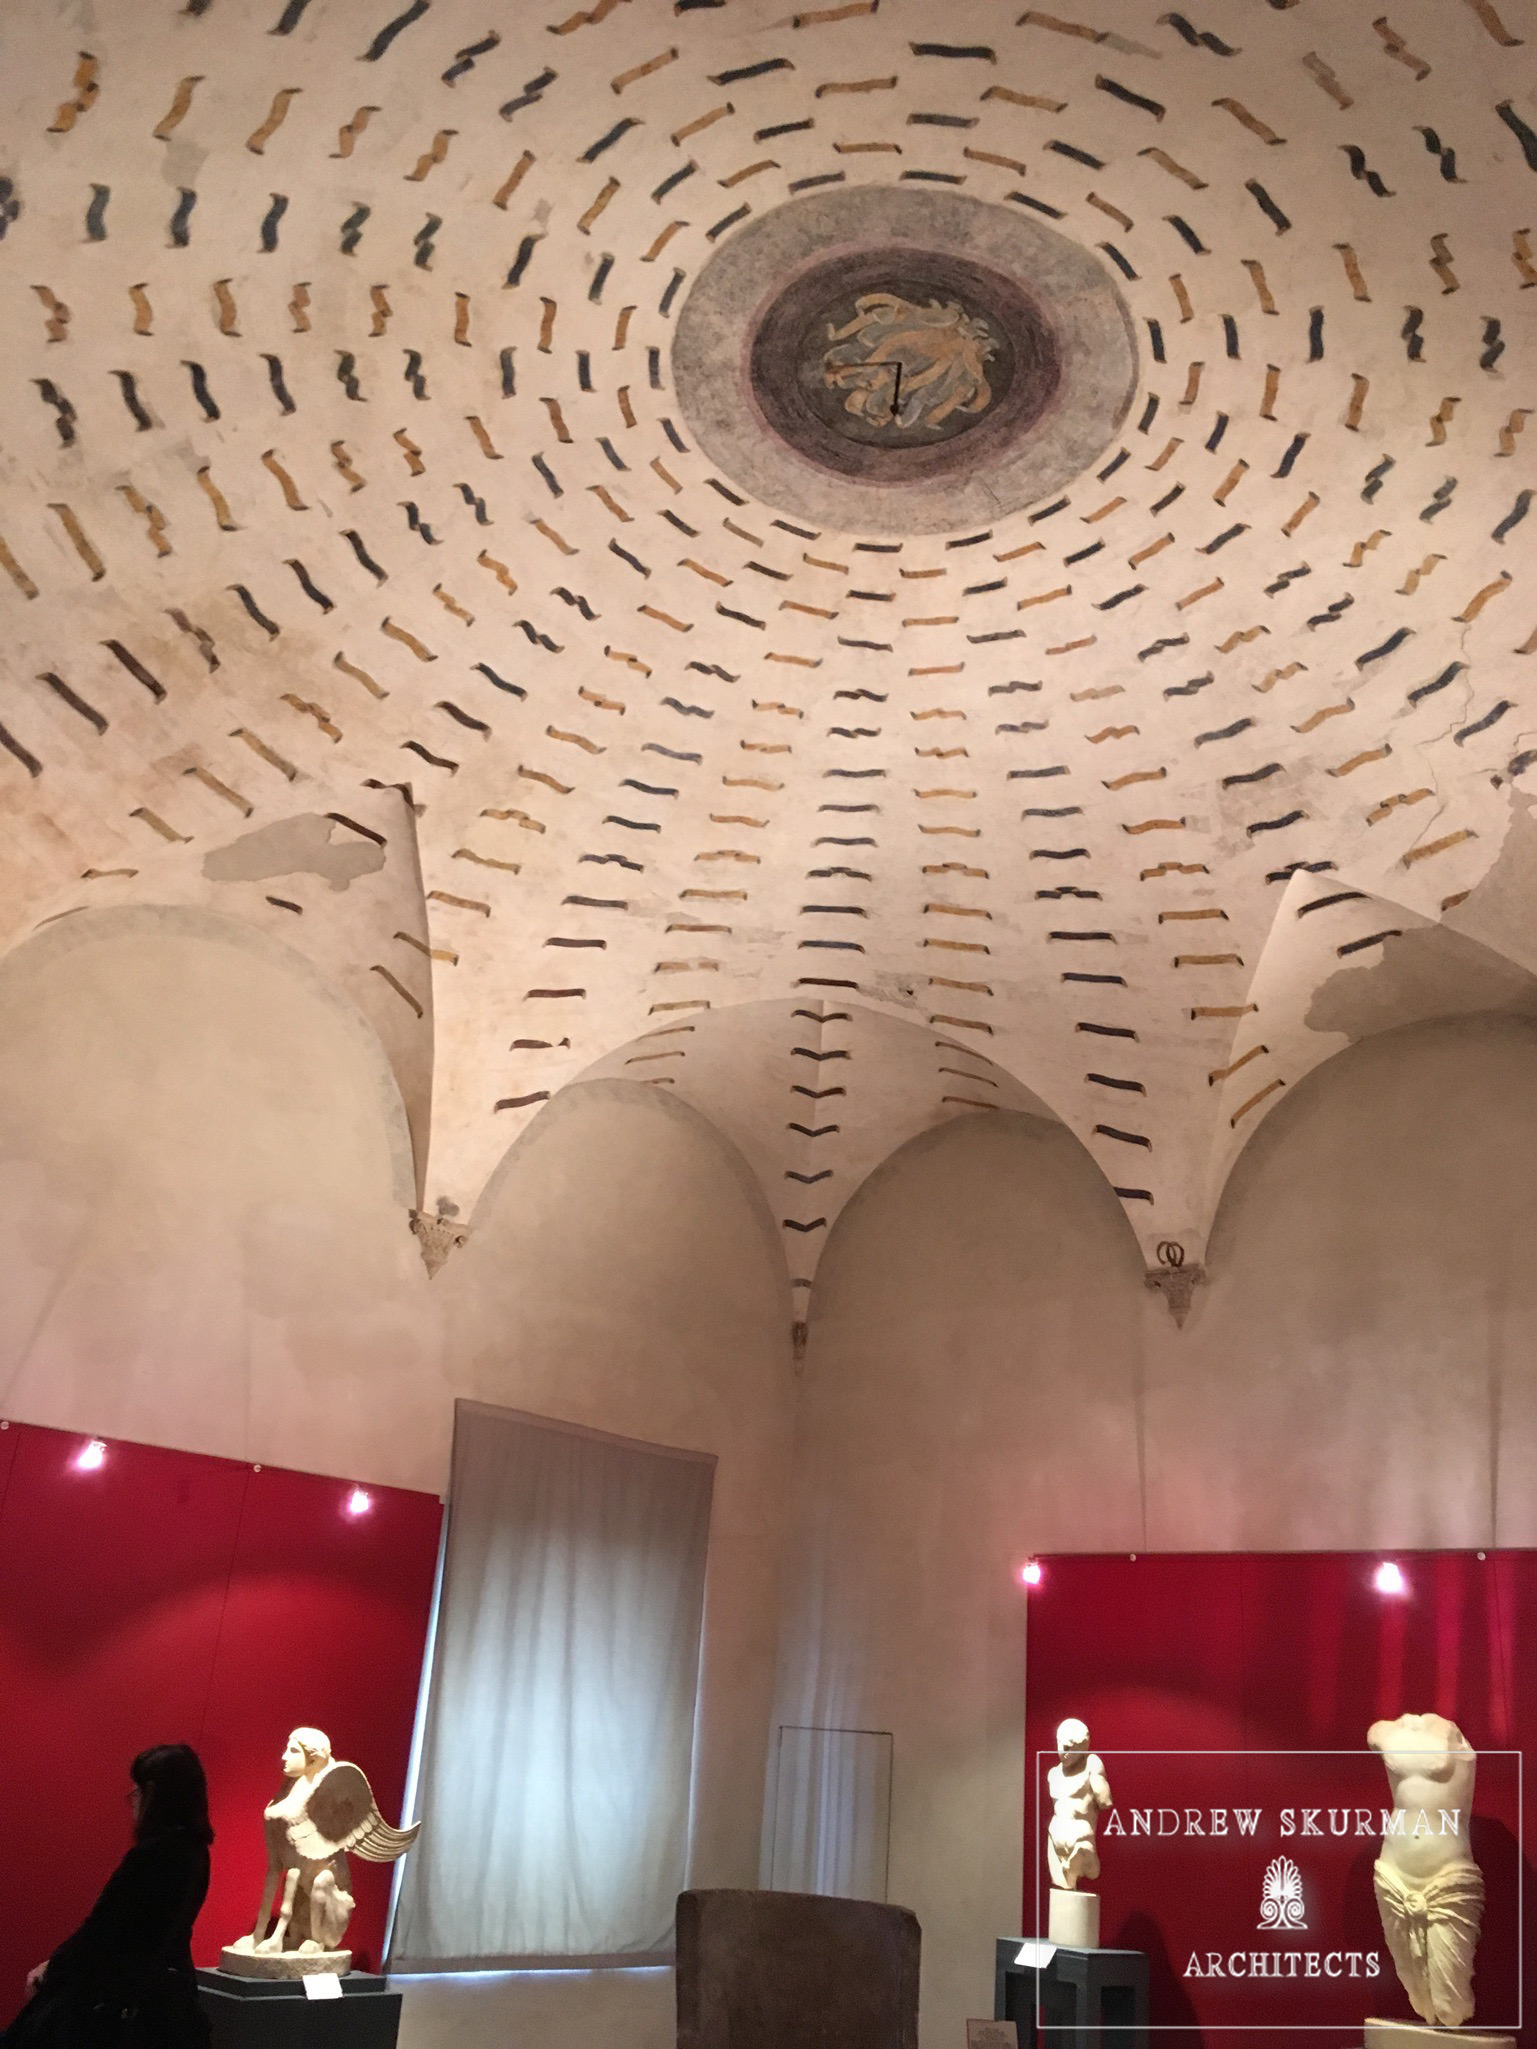 Itus incredible to see how this round vaulted ceiling is made to